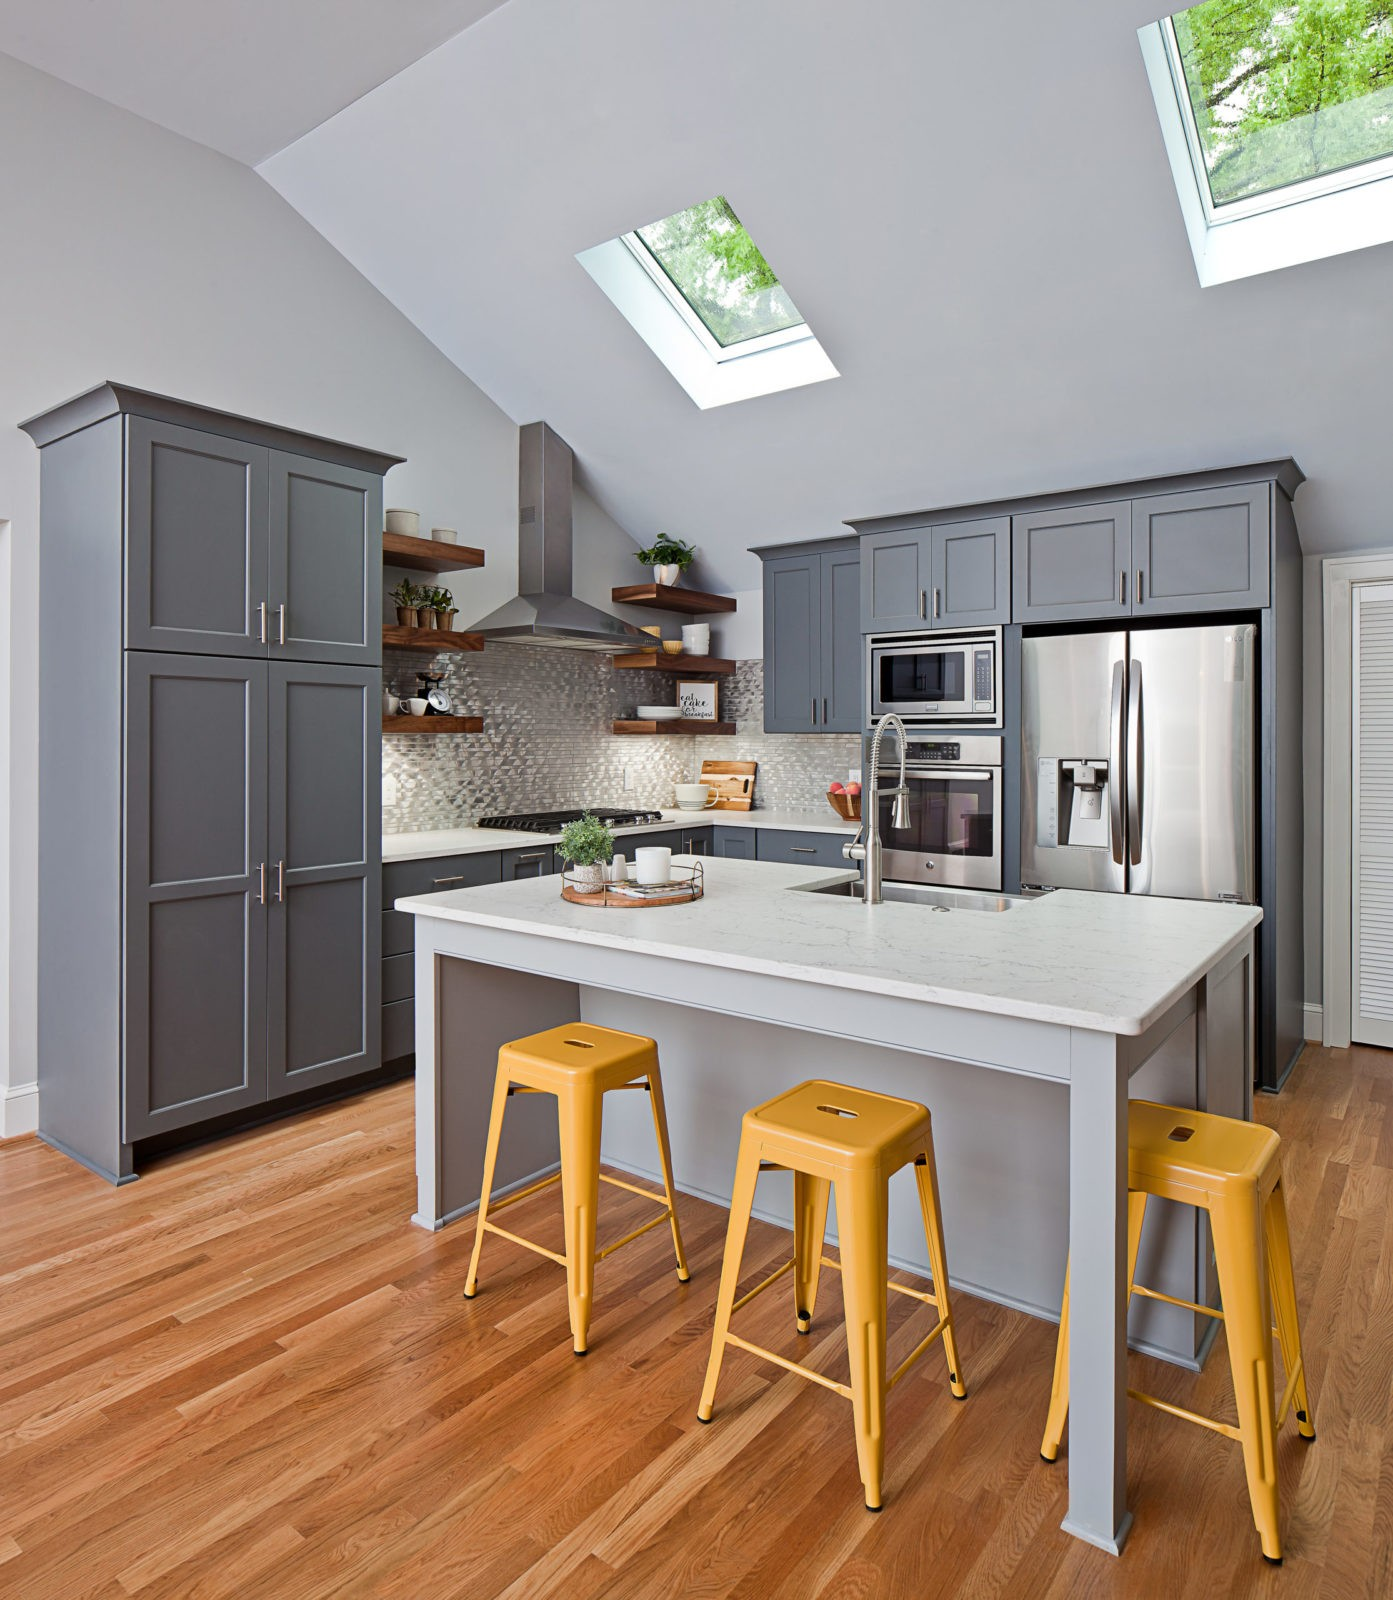 Open Concept Kitchen with Island in Plaza Midwood Island